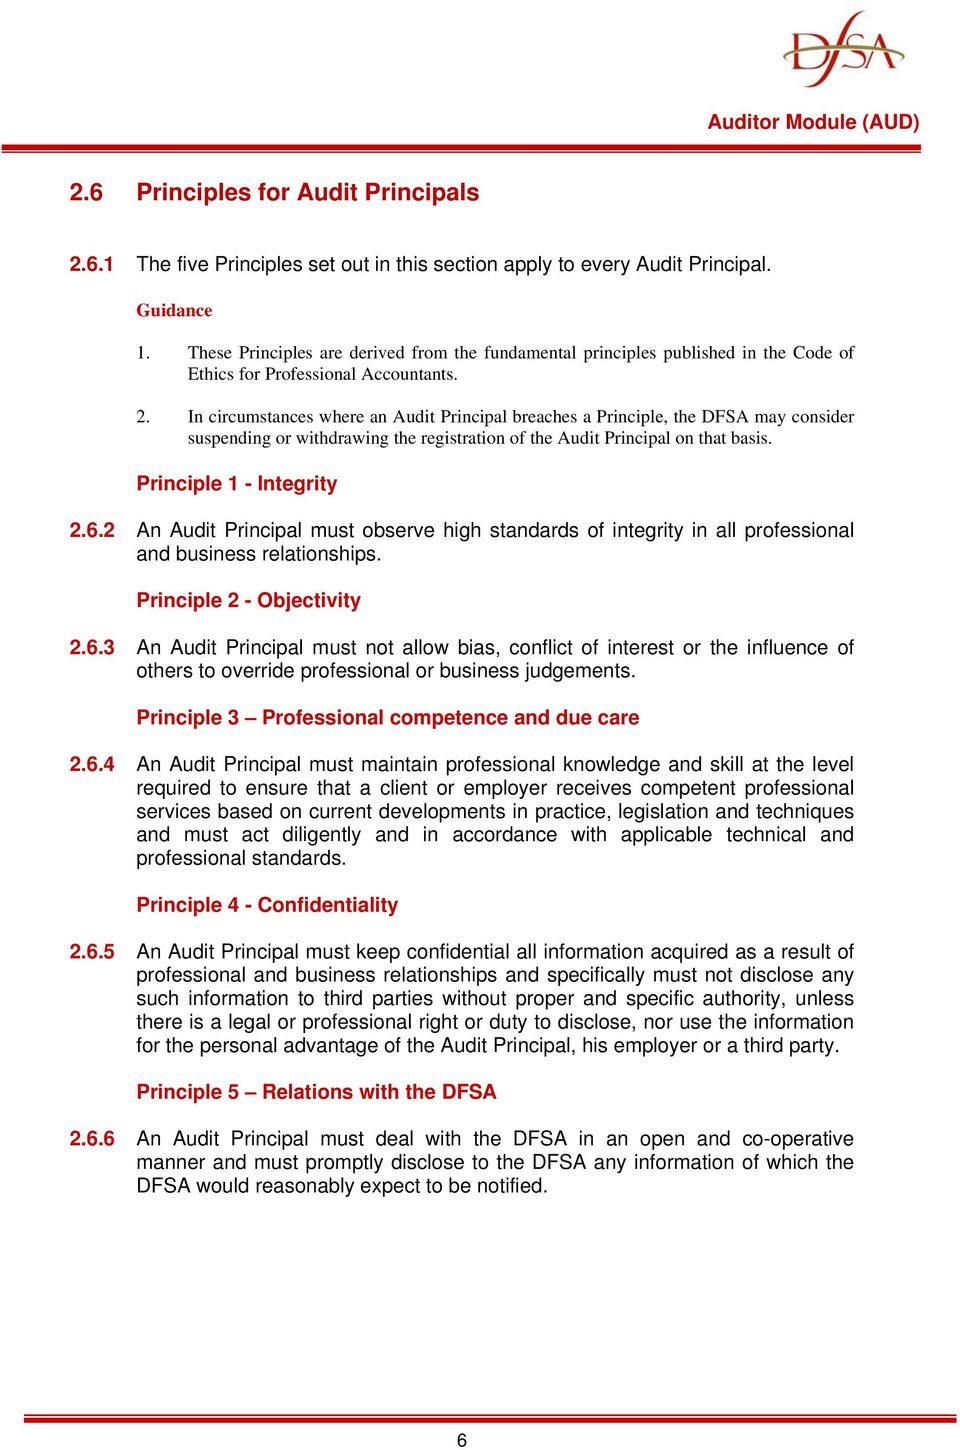 In circumstances where an Audit Principal breaches a Principle, the DFSA may consider suspending or withdrawing the registration of the Audit Principal on that basis. Principle 1 - Integrity 2.6.